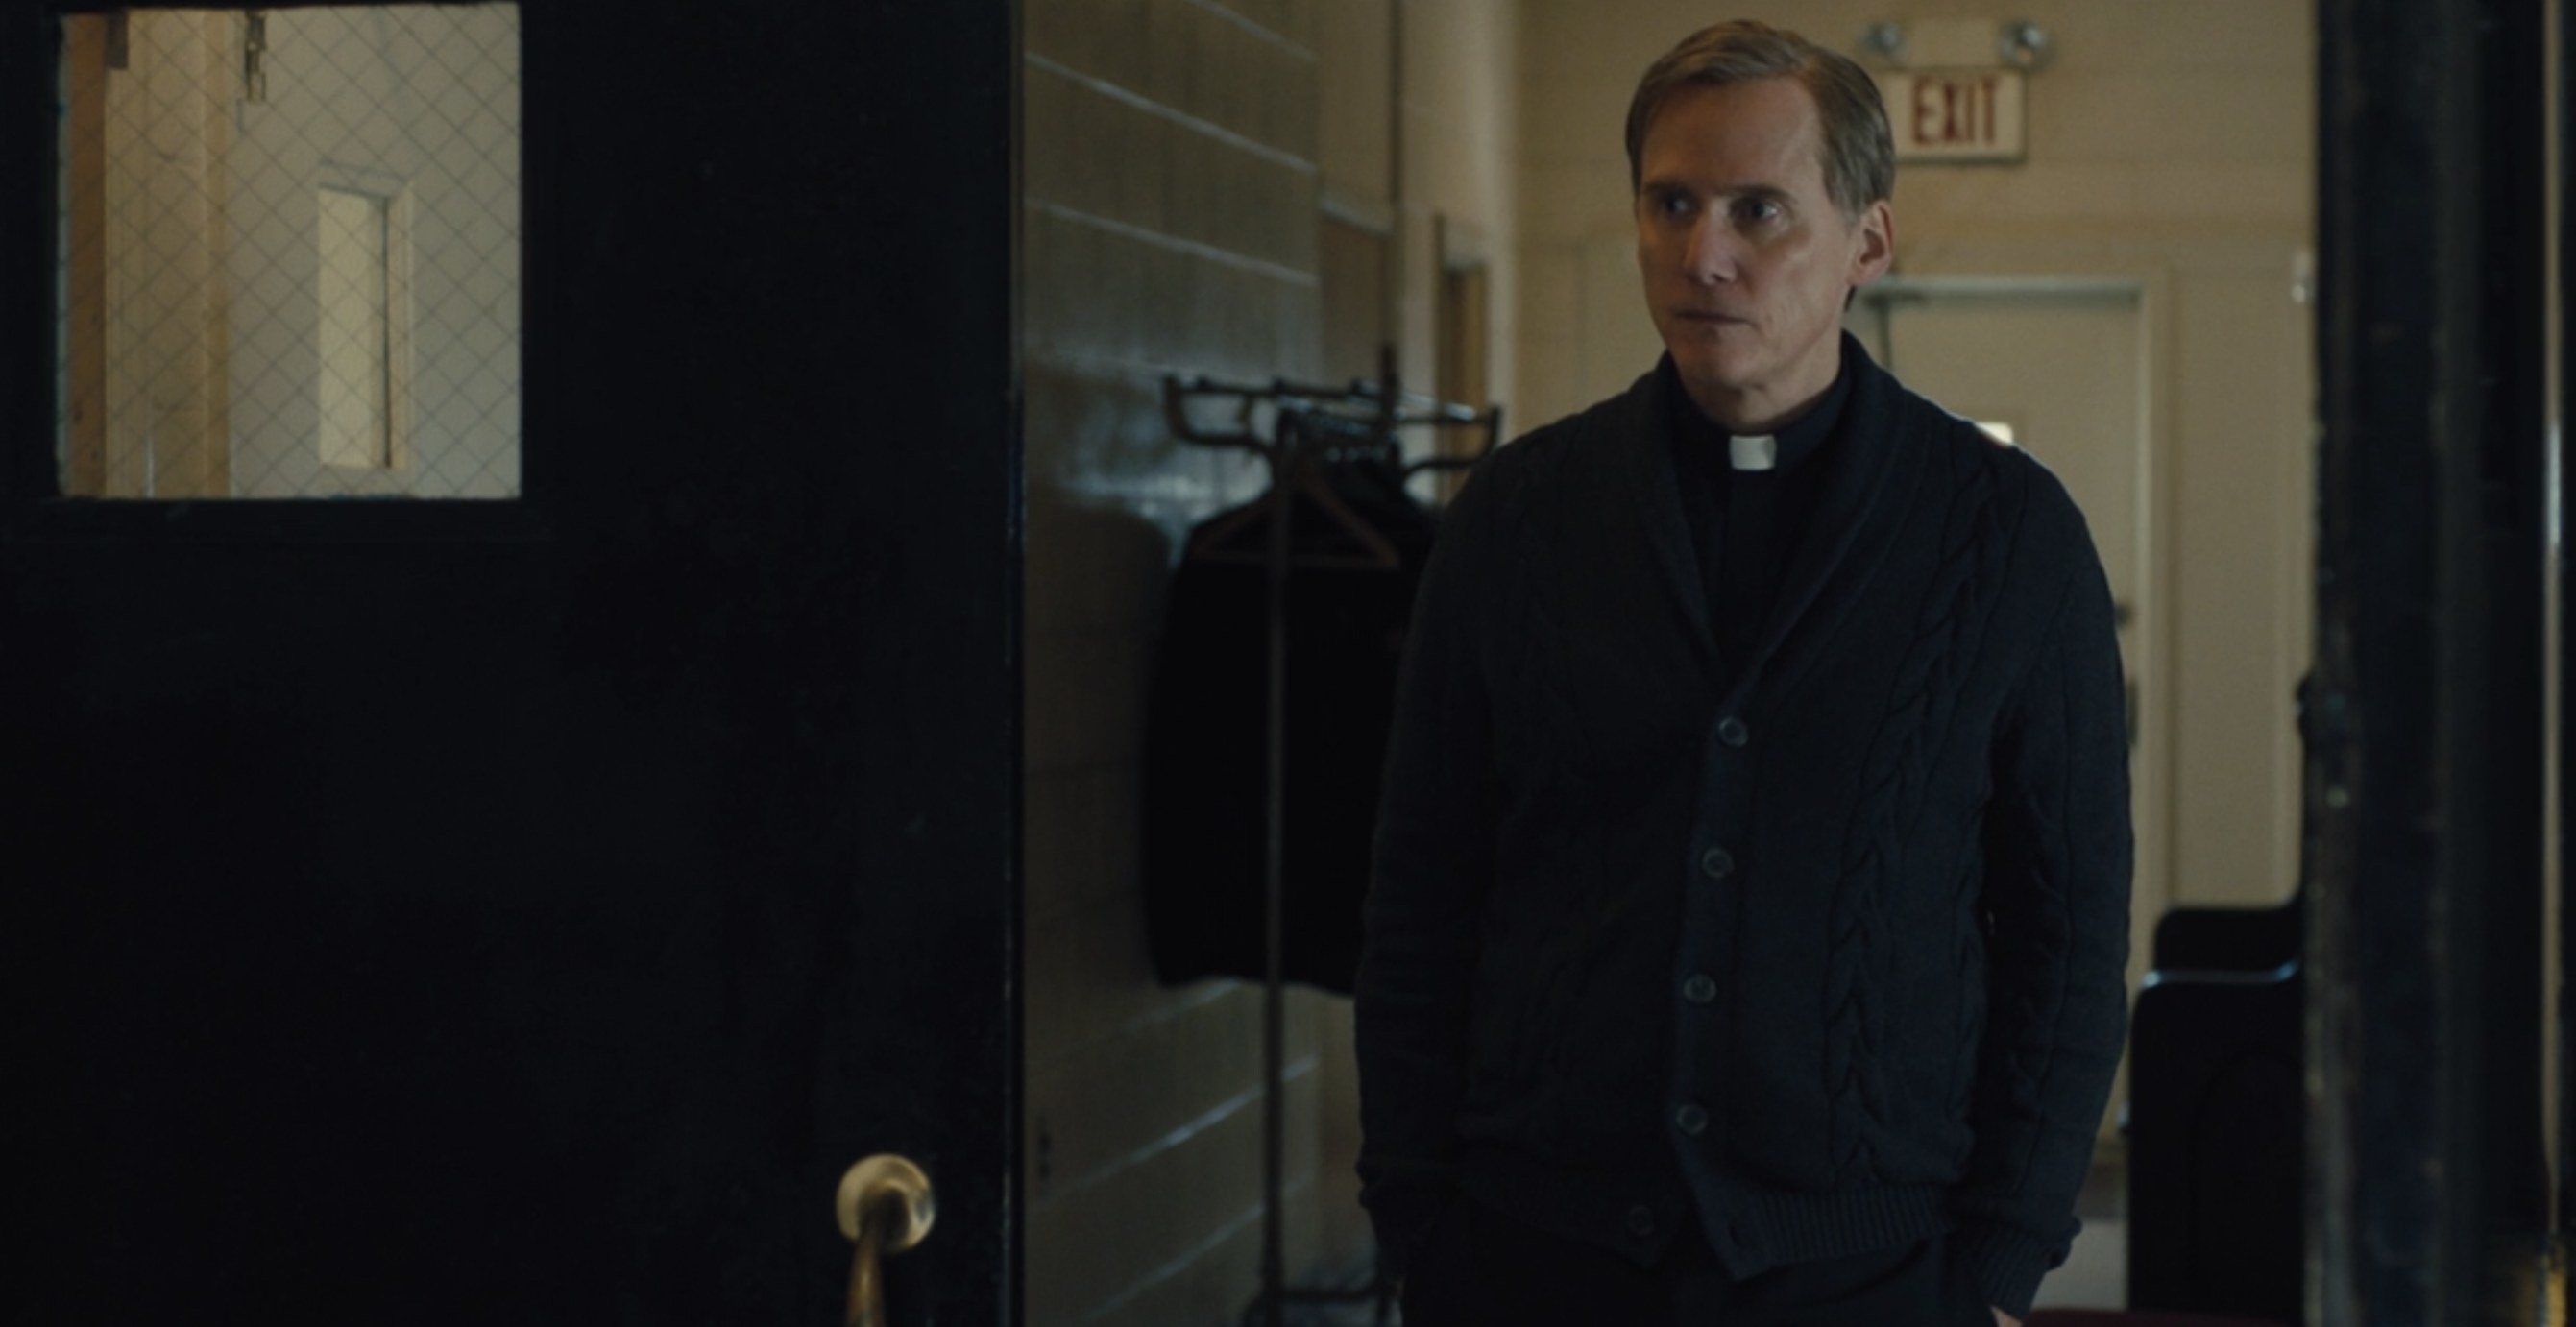 Father Dan Hastings looking concerned